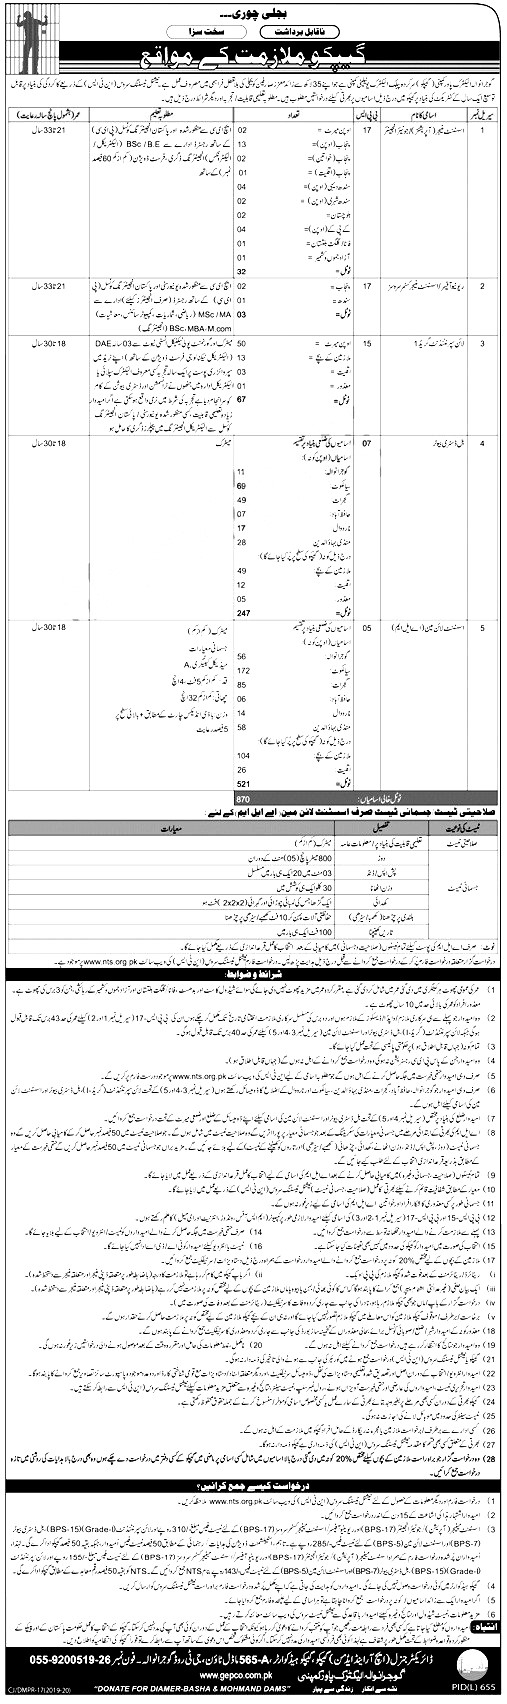 GEPCO Gujranwala Electric Power Company Jobs 2019 Application Form Roll No Slip Download